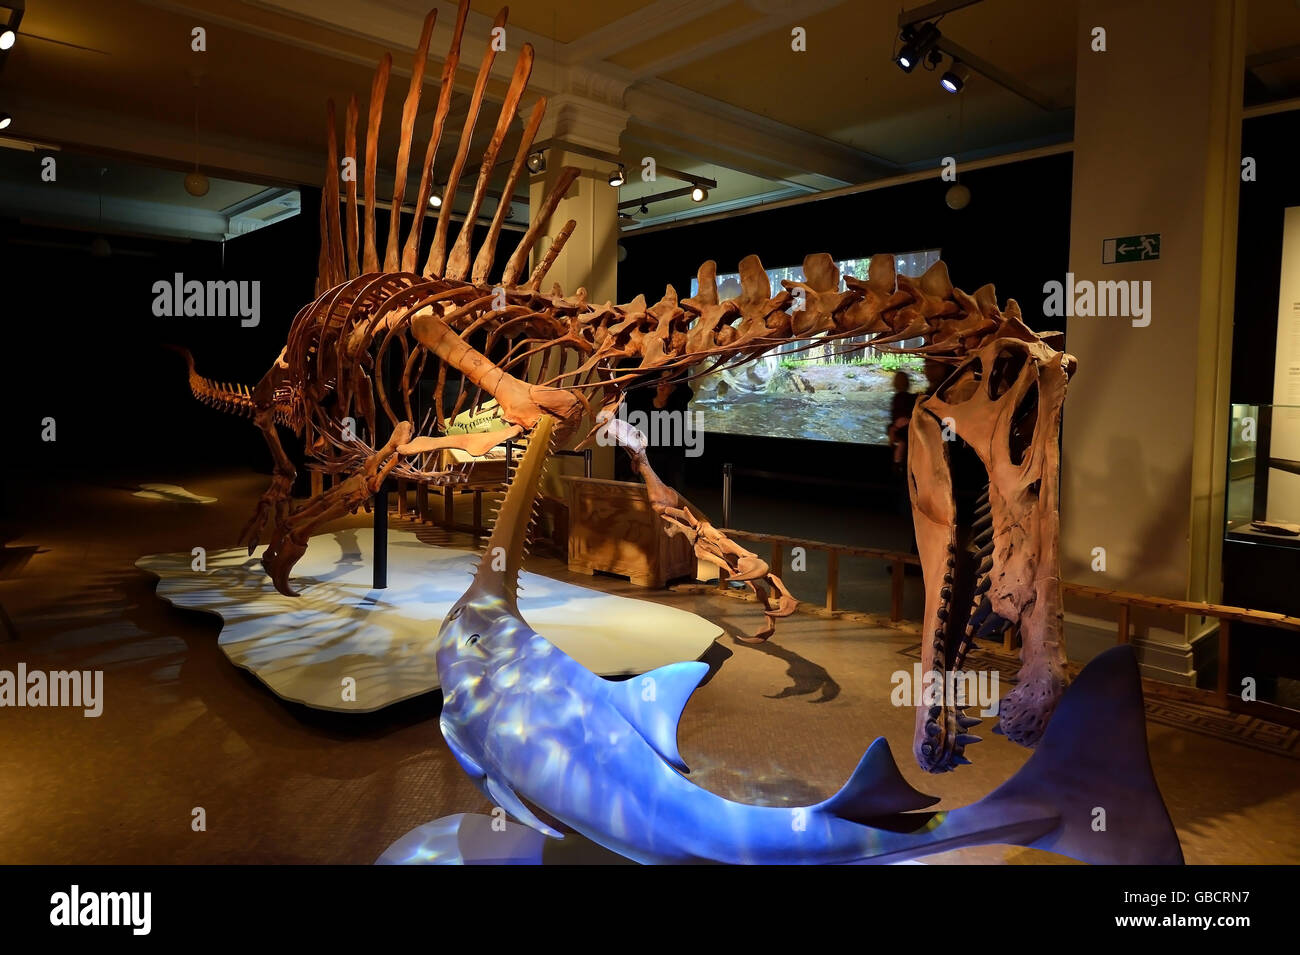 Sceleton replica of Spinosaurus aegyptiacus, museum of natural history, Berlin, Germany - Stock Image